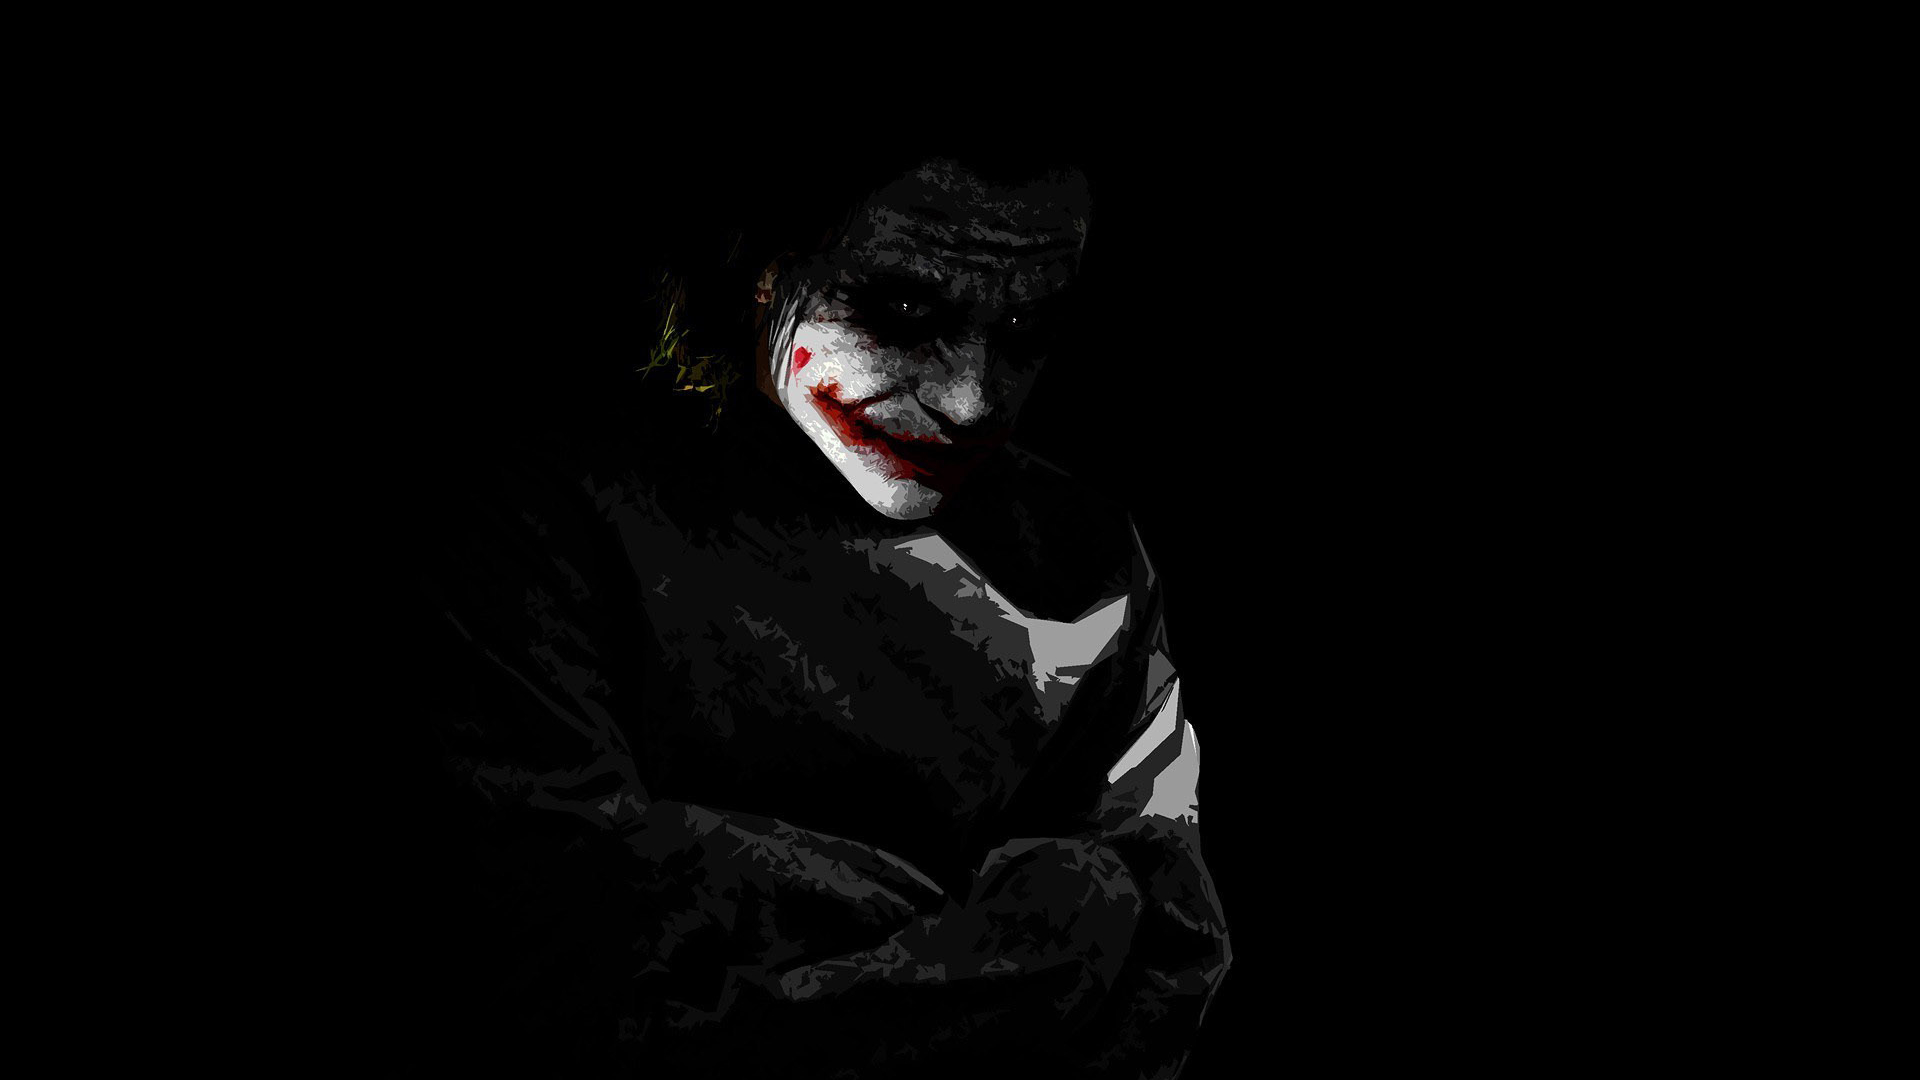 Free Download Joker Hd Wallpapers 1080p Hd Wallpapers Pretty 1920x1200 For Your Desktop Mobile Tablet Explore 47 Joker Hd Wallpapers 1080p Joker And Batman Wallpaper The Joker Hd Wallpaper